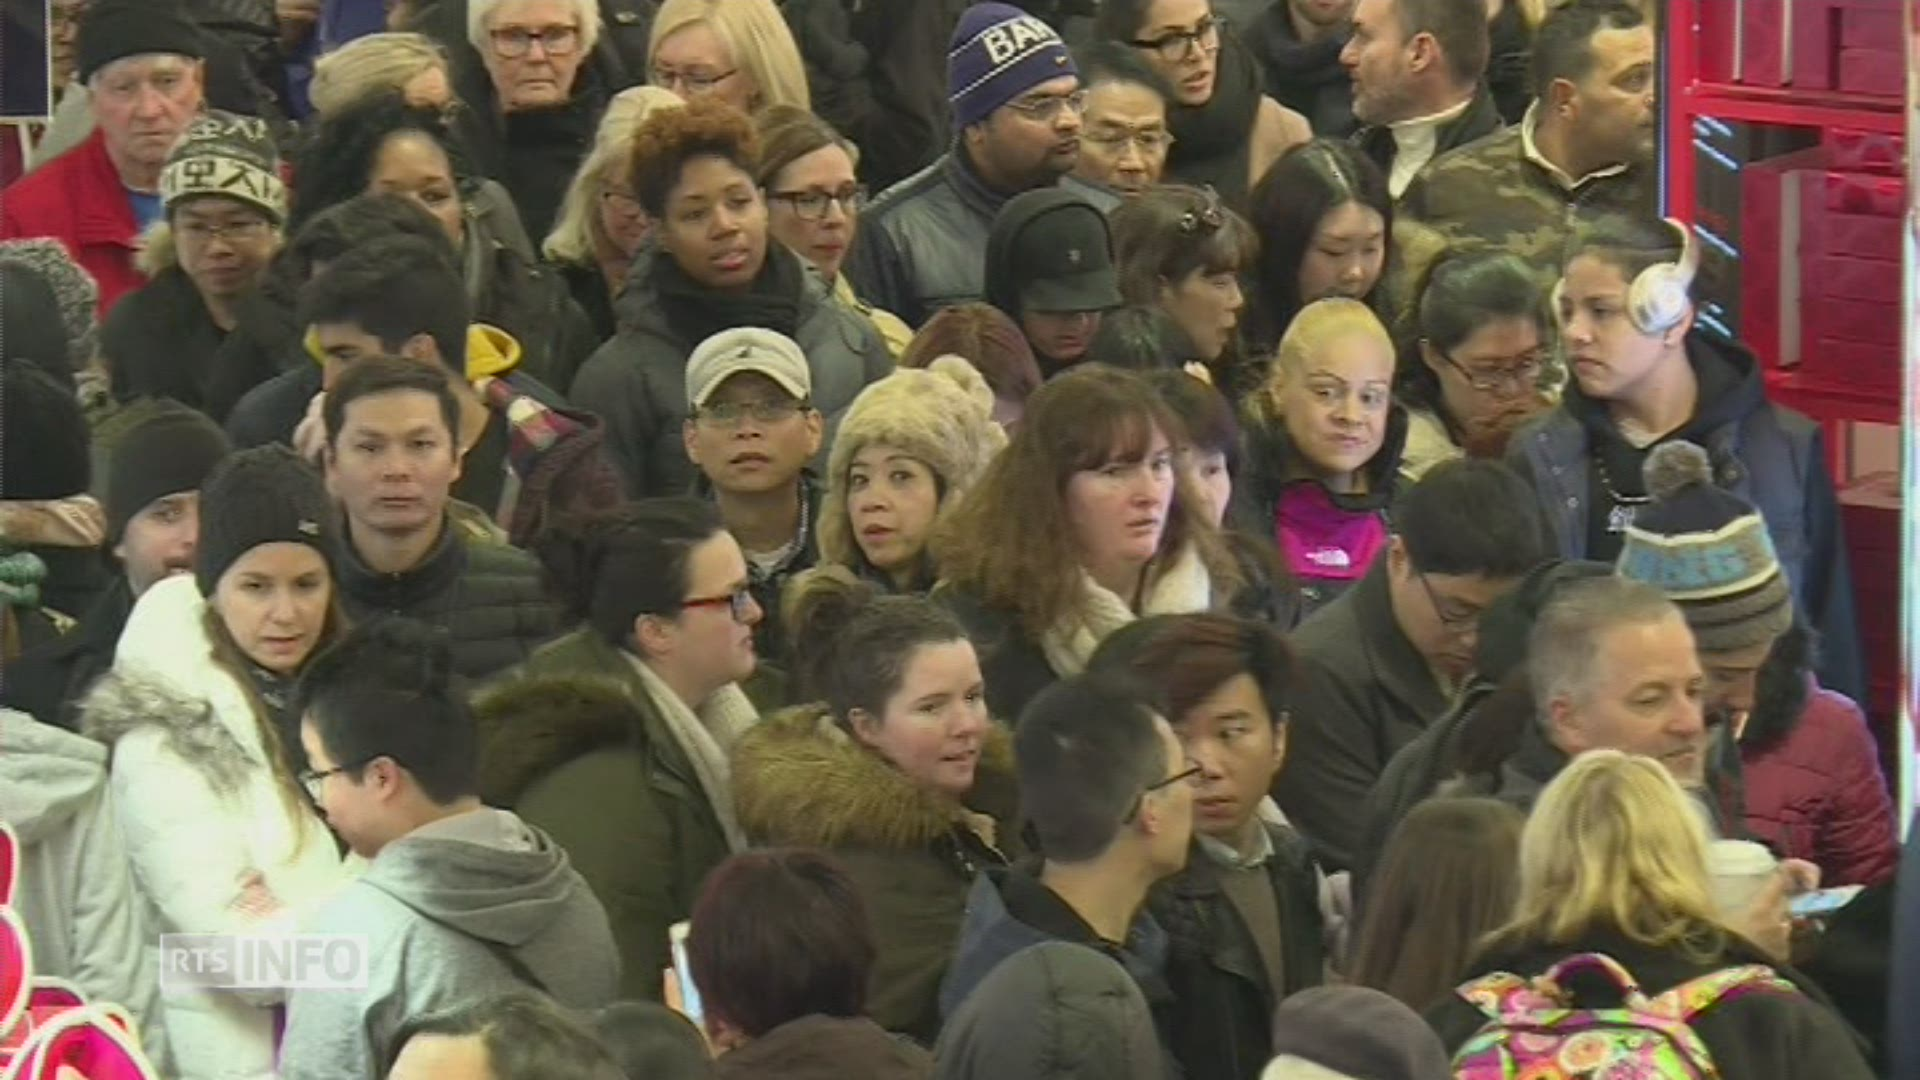 La foule se presse à New York pour le Black Friday